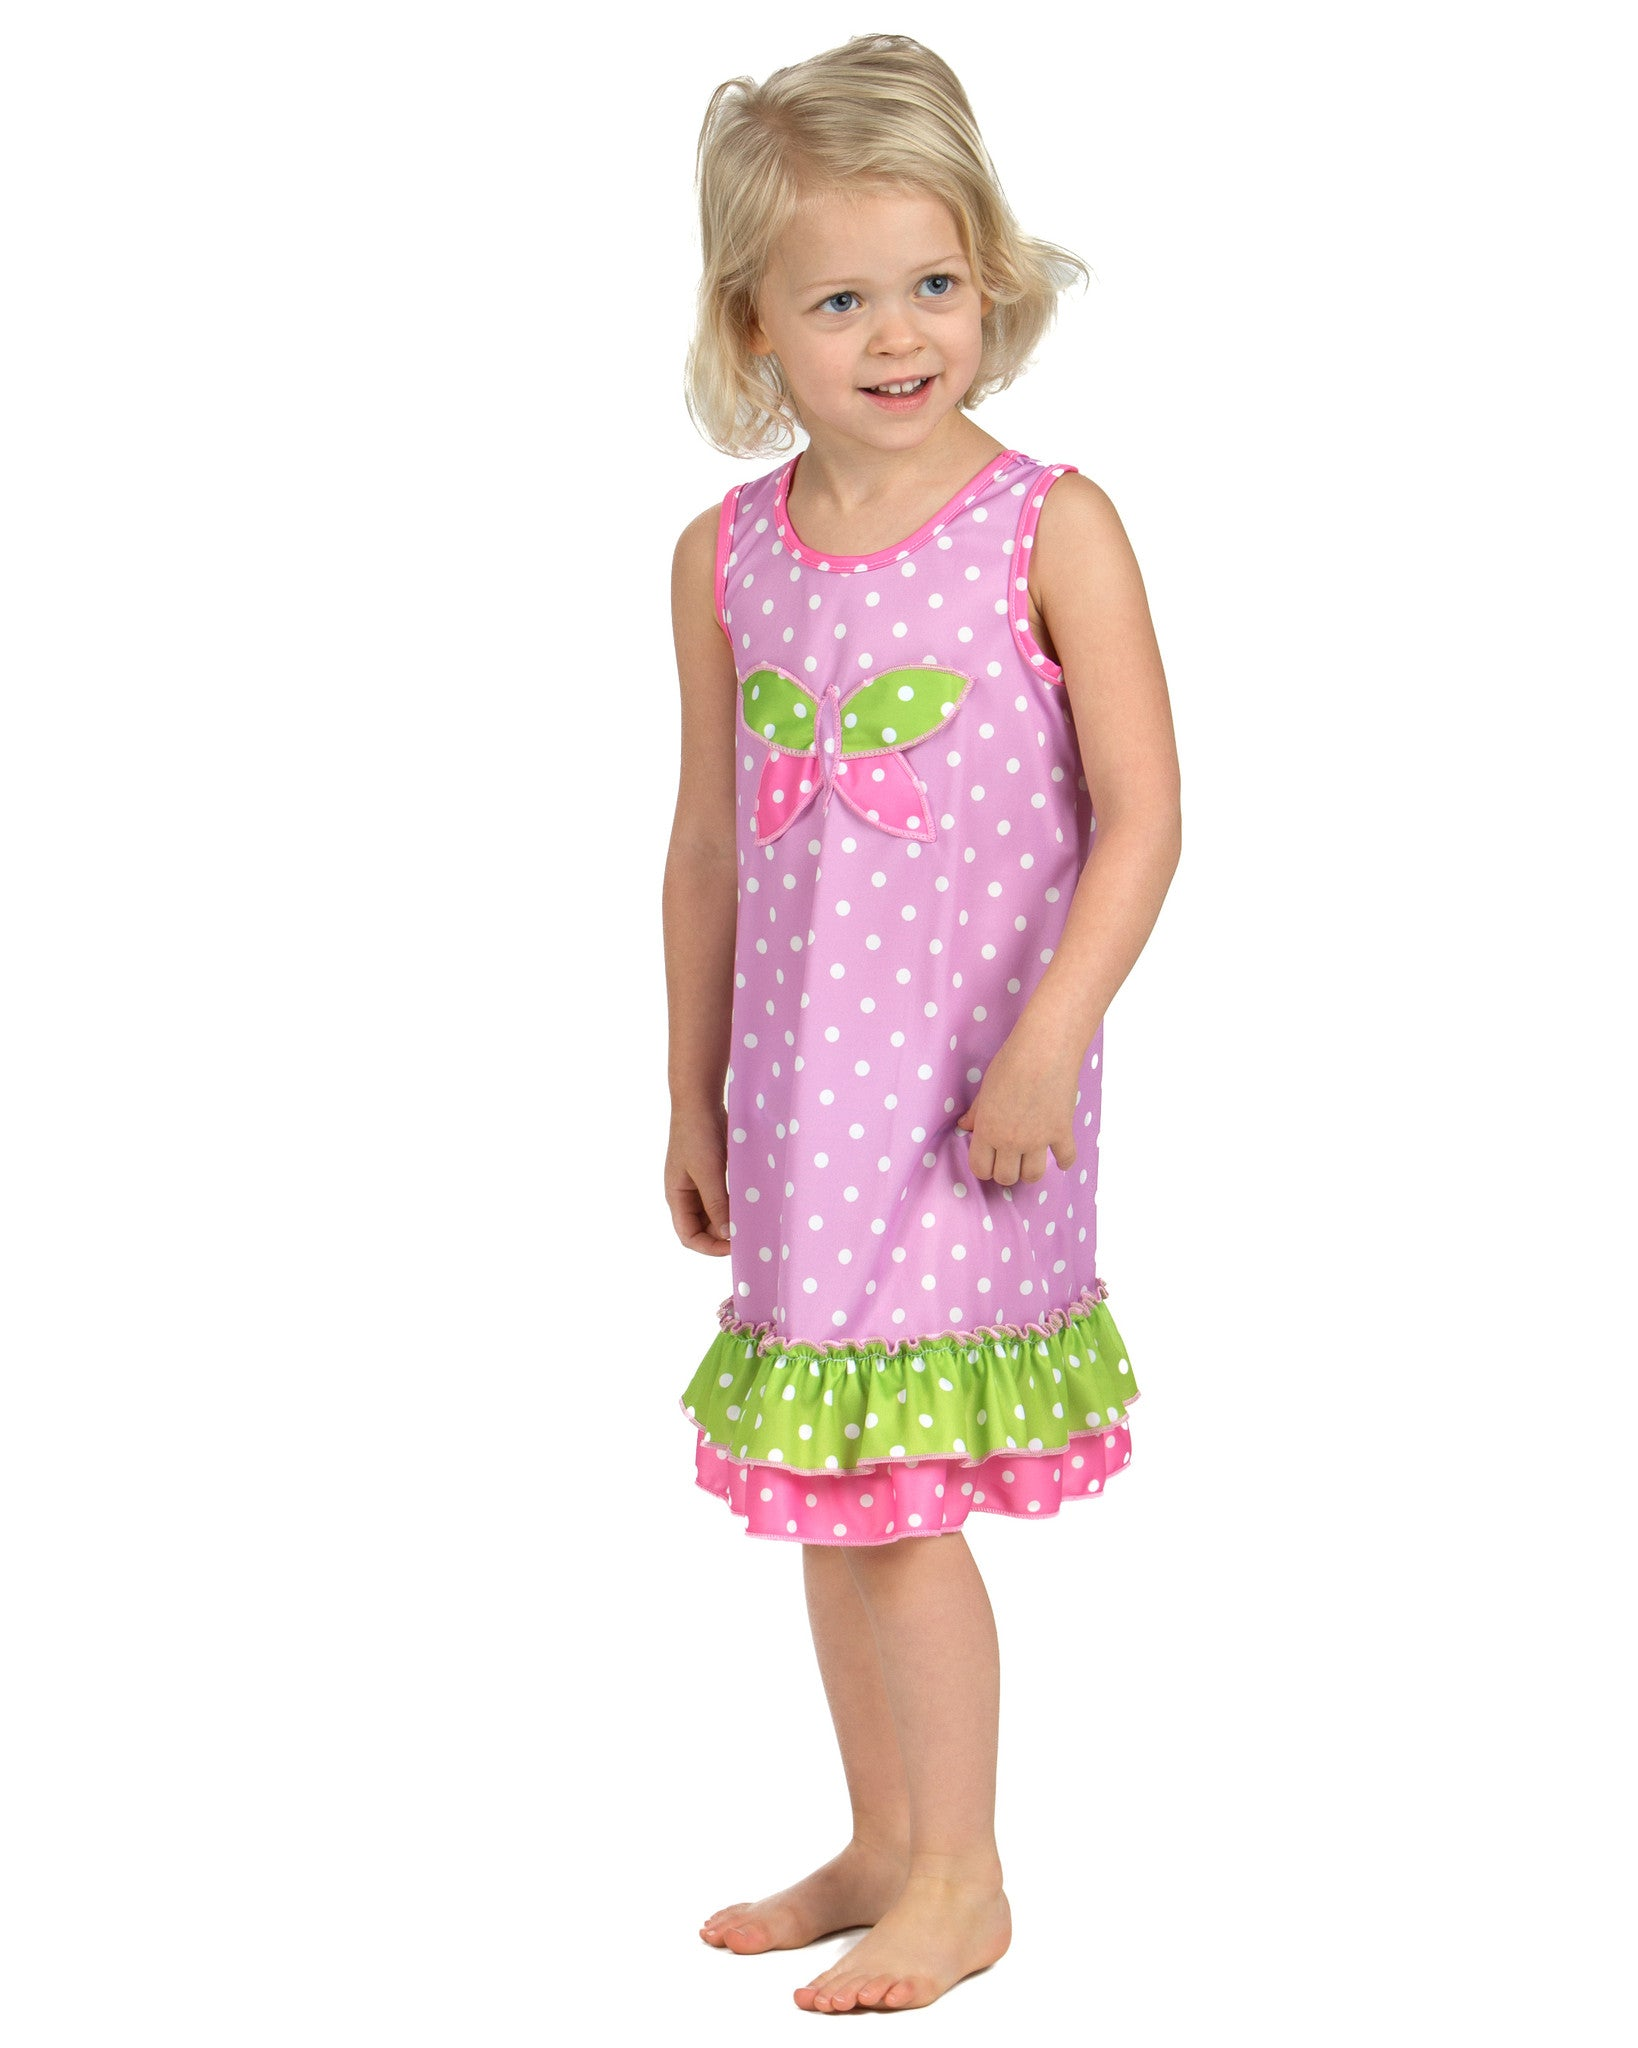 Laura Dare Dot Egg Stravaganza Butterfly Nightgown (12m-6x)